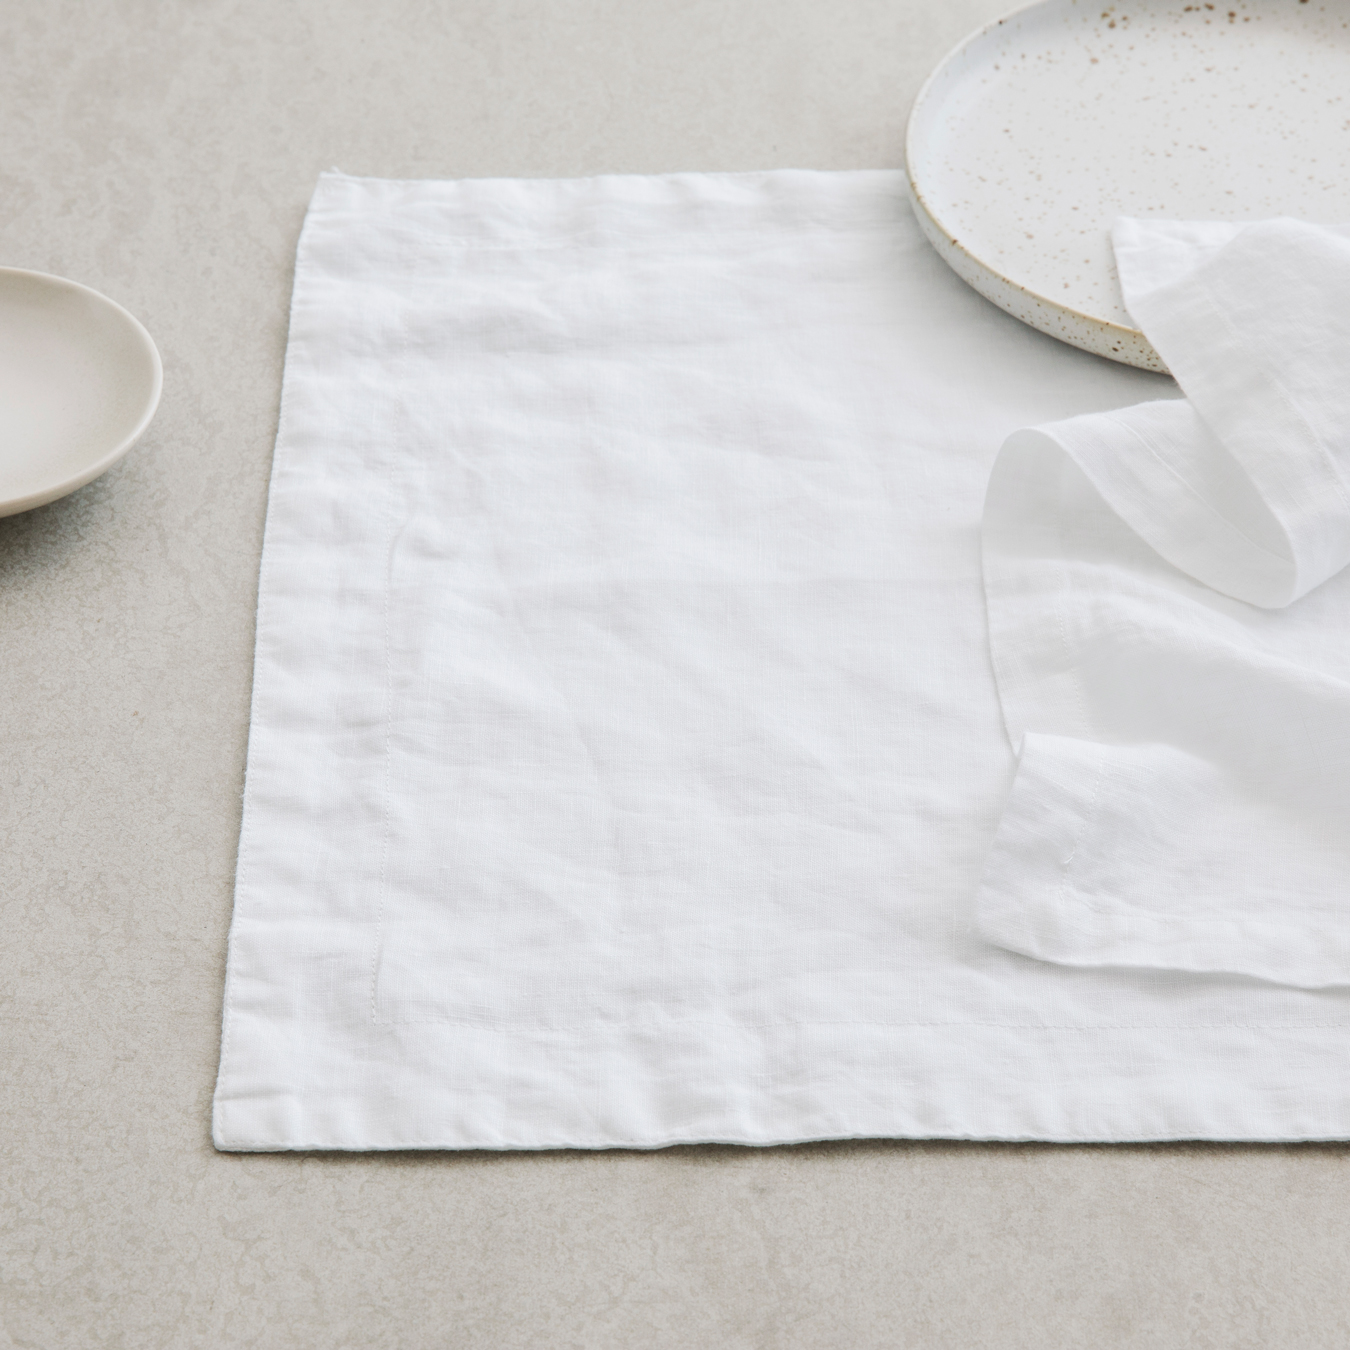 Linen Placemats White Set Of 4